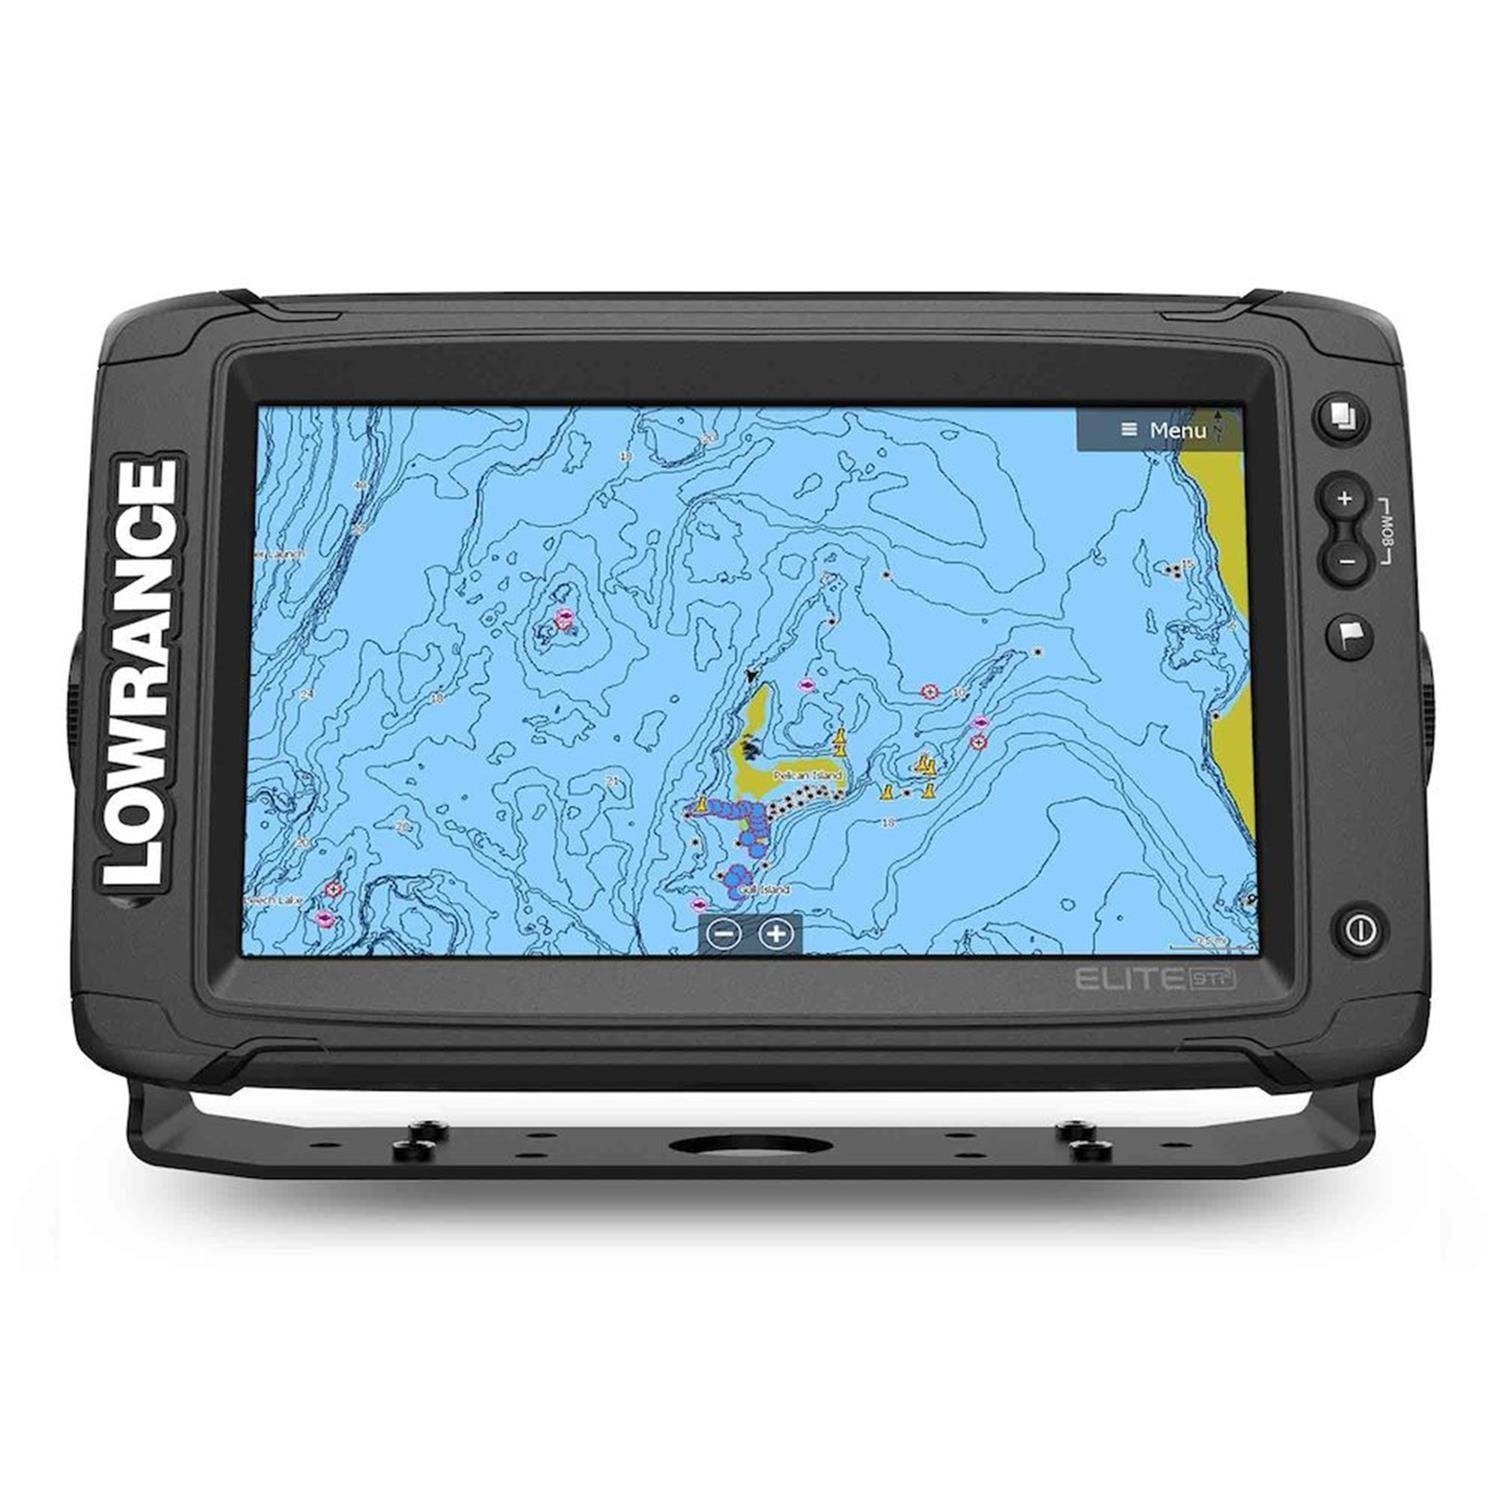 Lowrance Elite Ti2 Fish Finder Elite Ti2 9 US/Canada Mapping with 3-in-1 Transducer